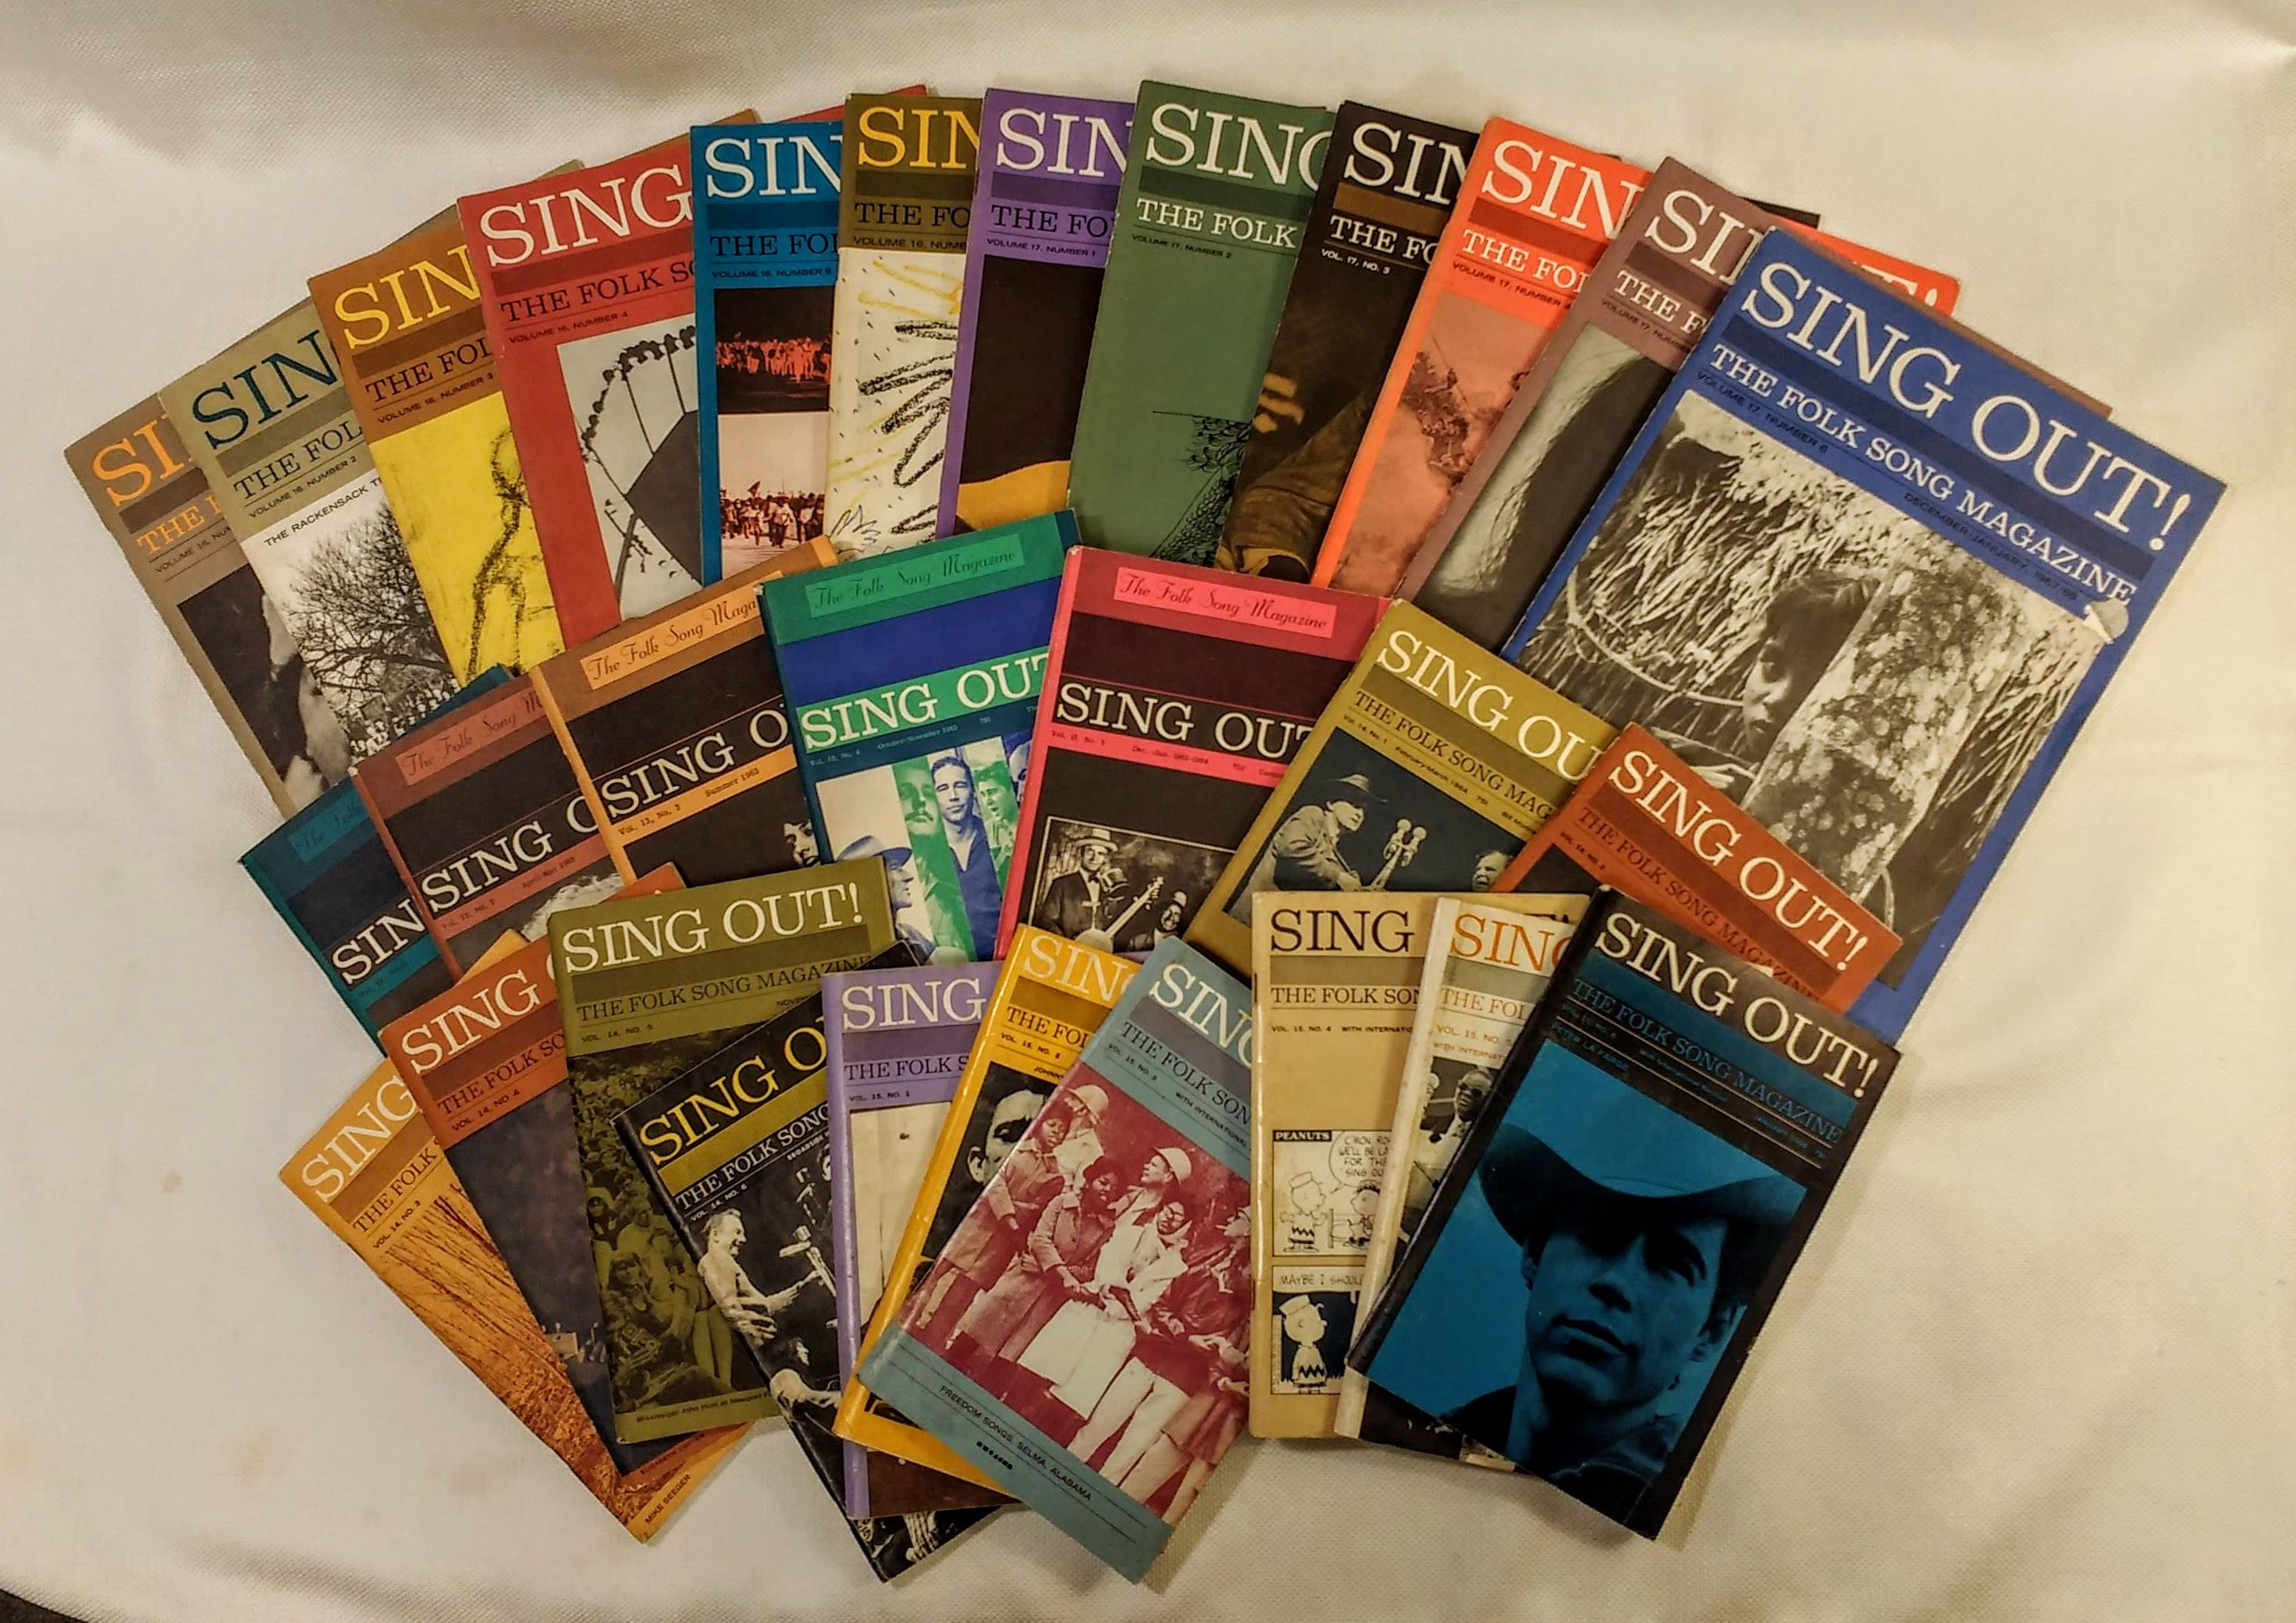 Sing Out! The Folk Song Magazine; Vols. 13 - 17, complete in 29 issues (1963 - 1967), Silber, Irwin [editor]